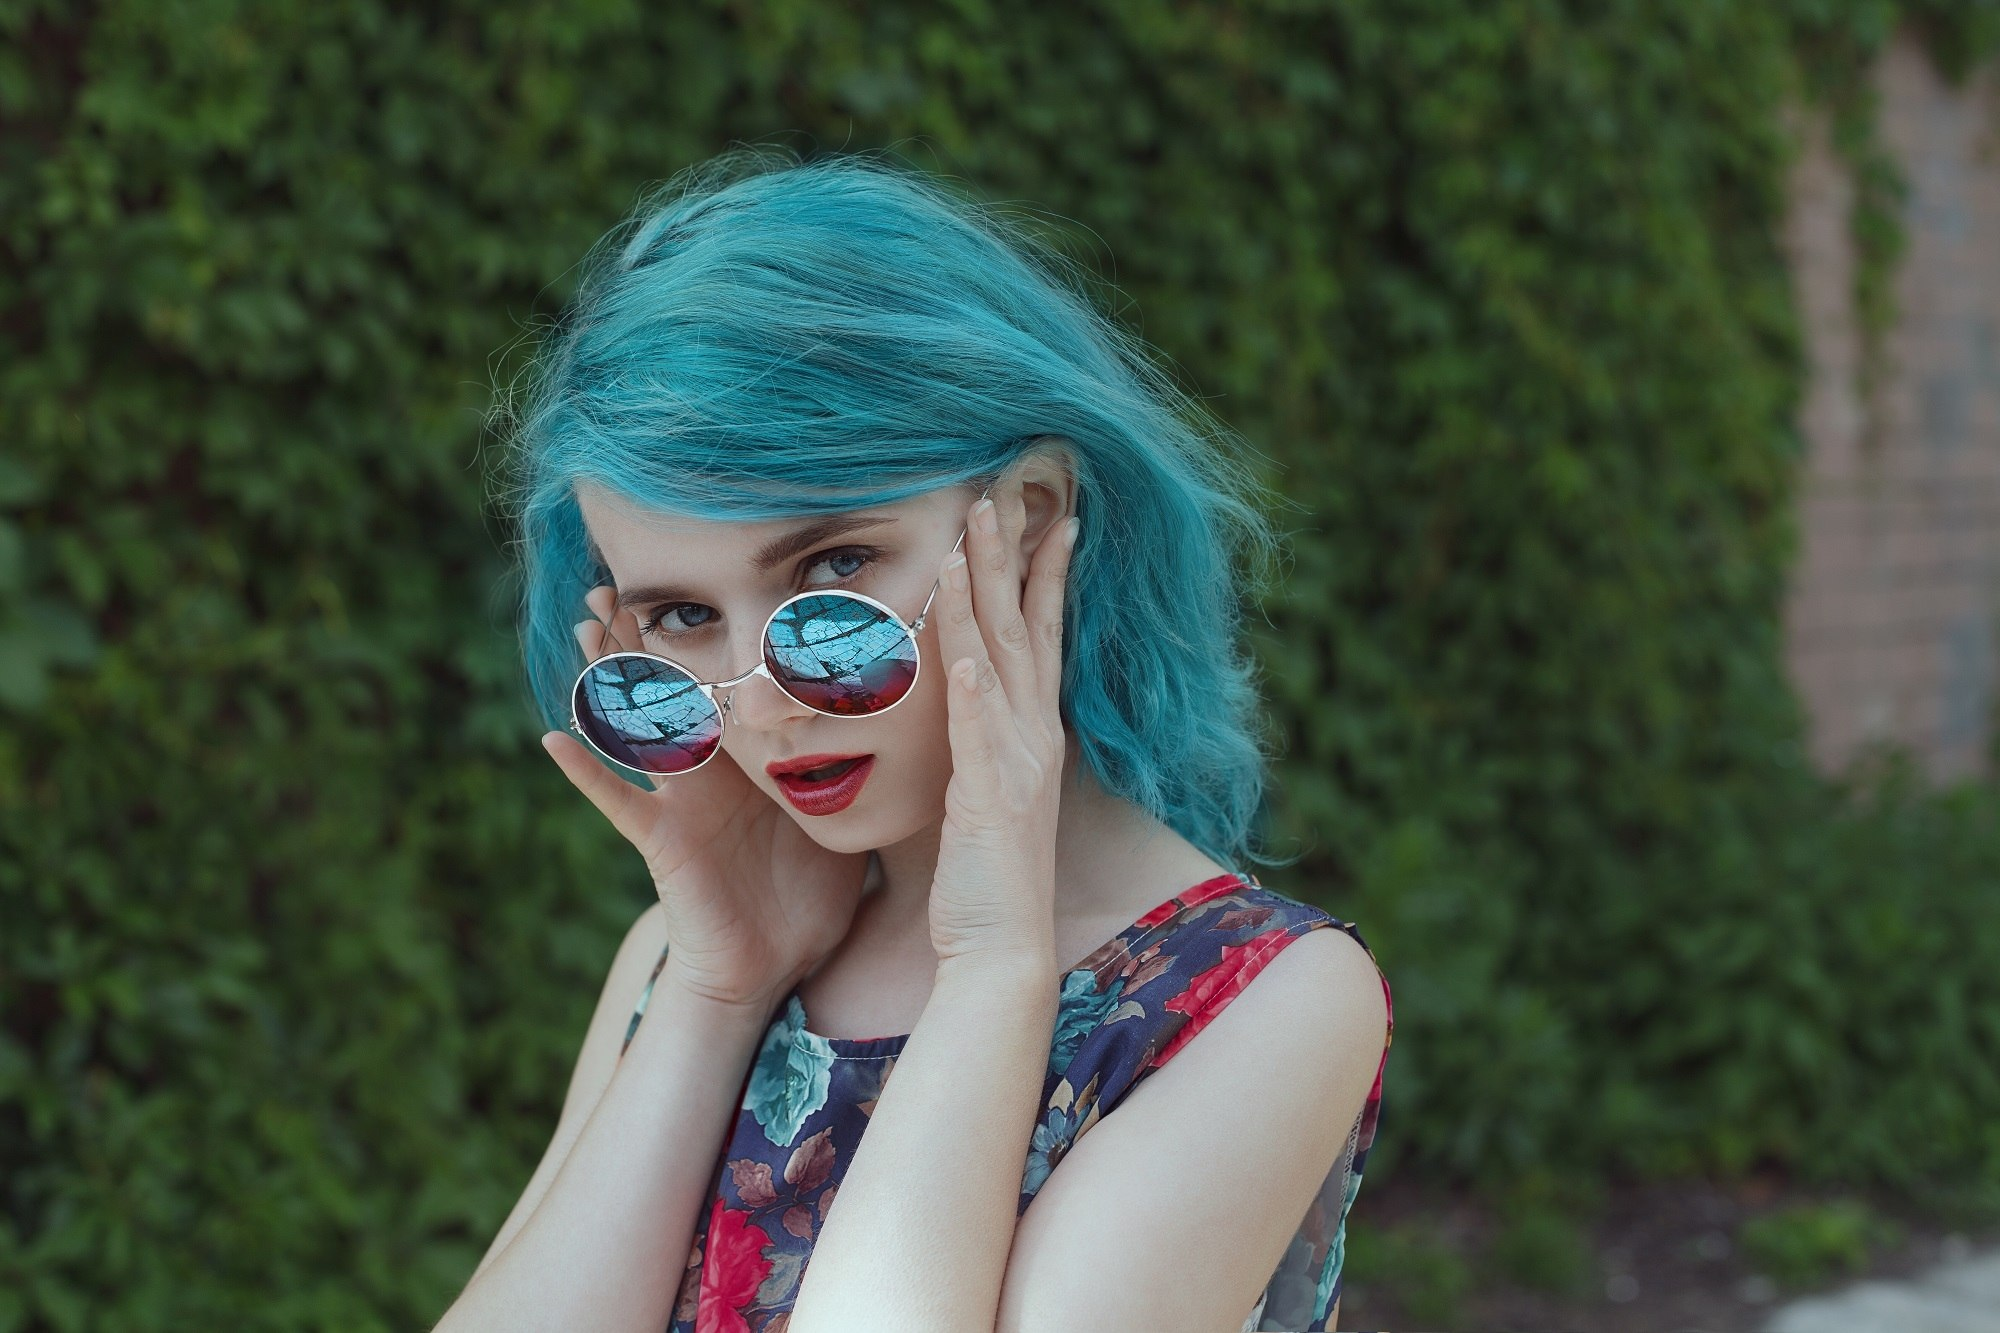 Blue hair: Woman with pale skin and teal hair